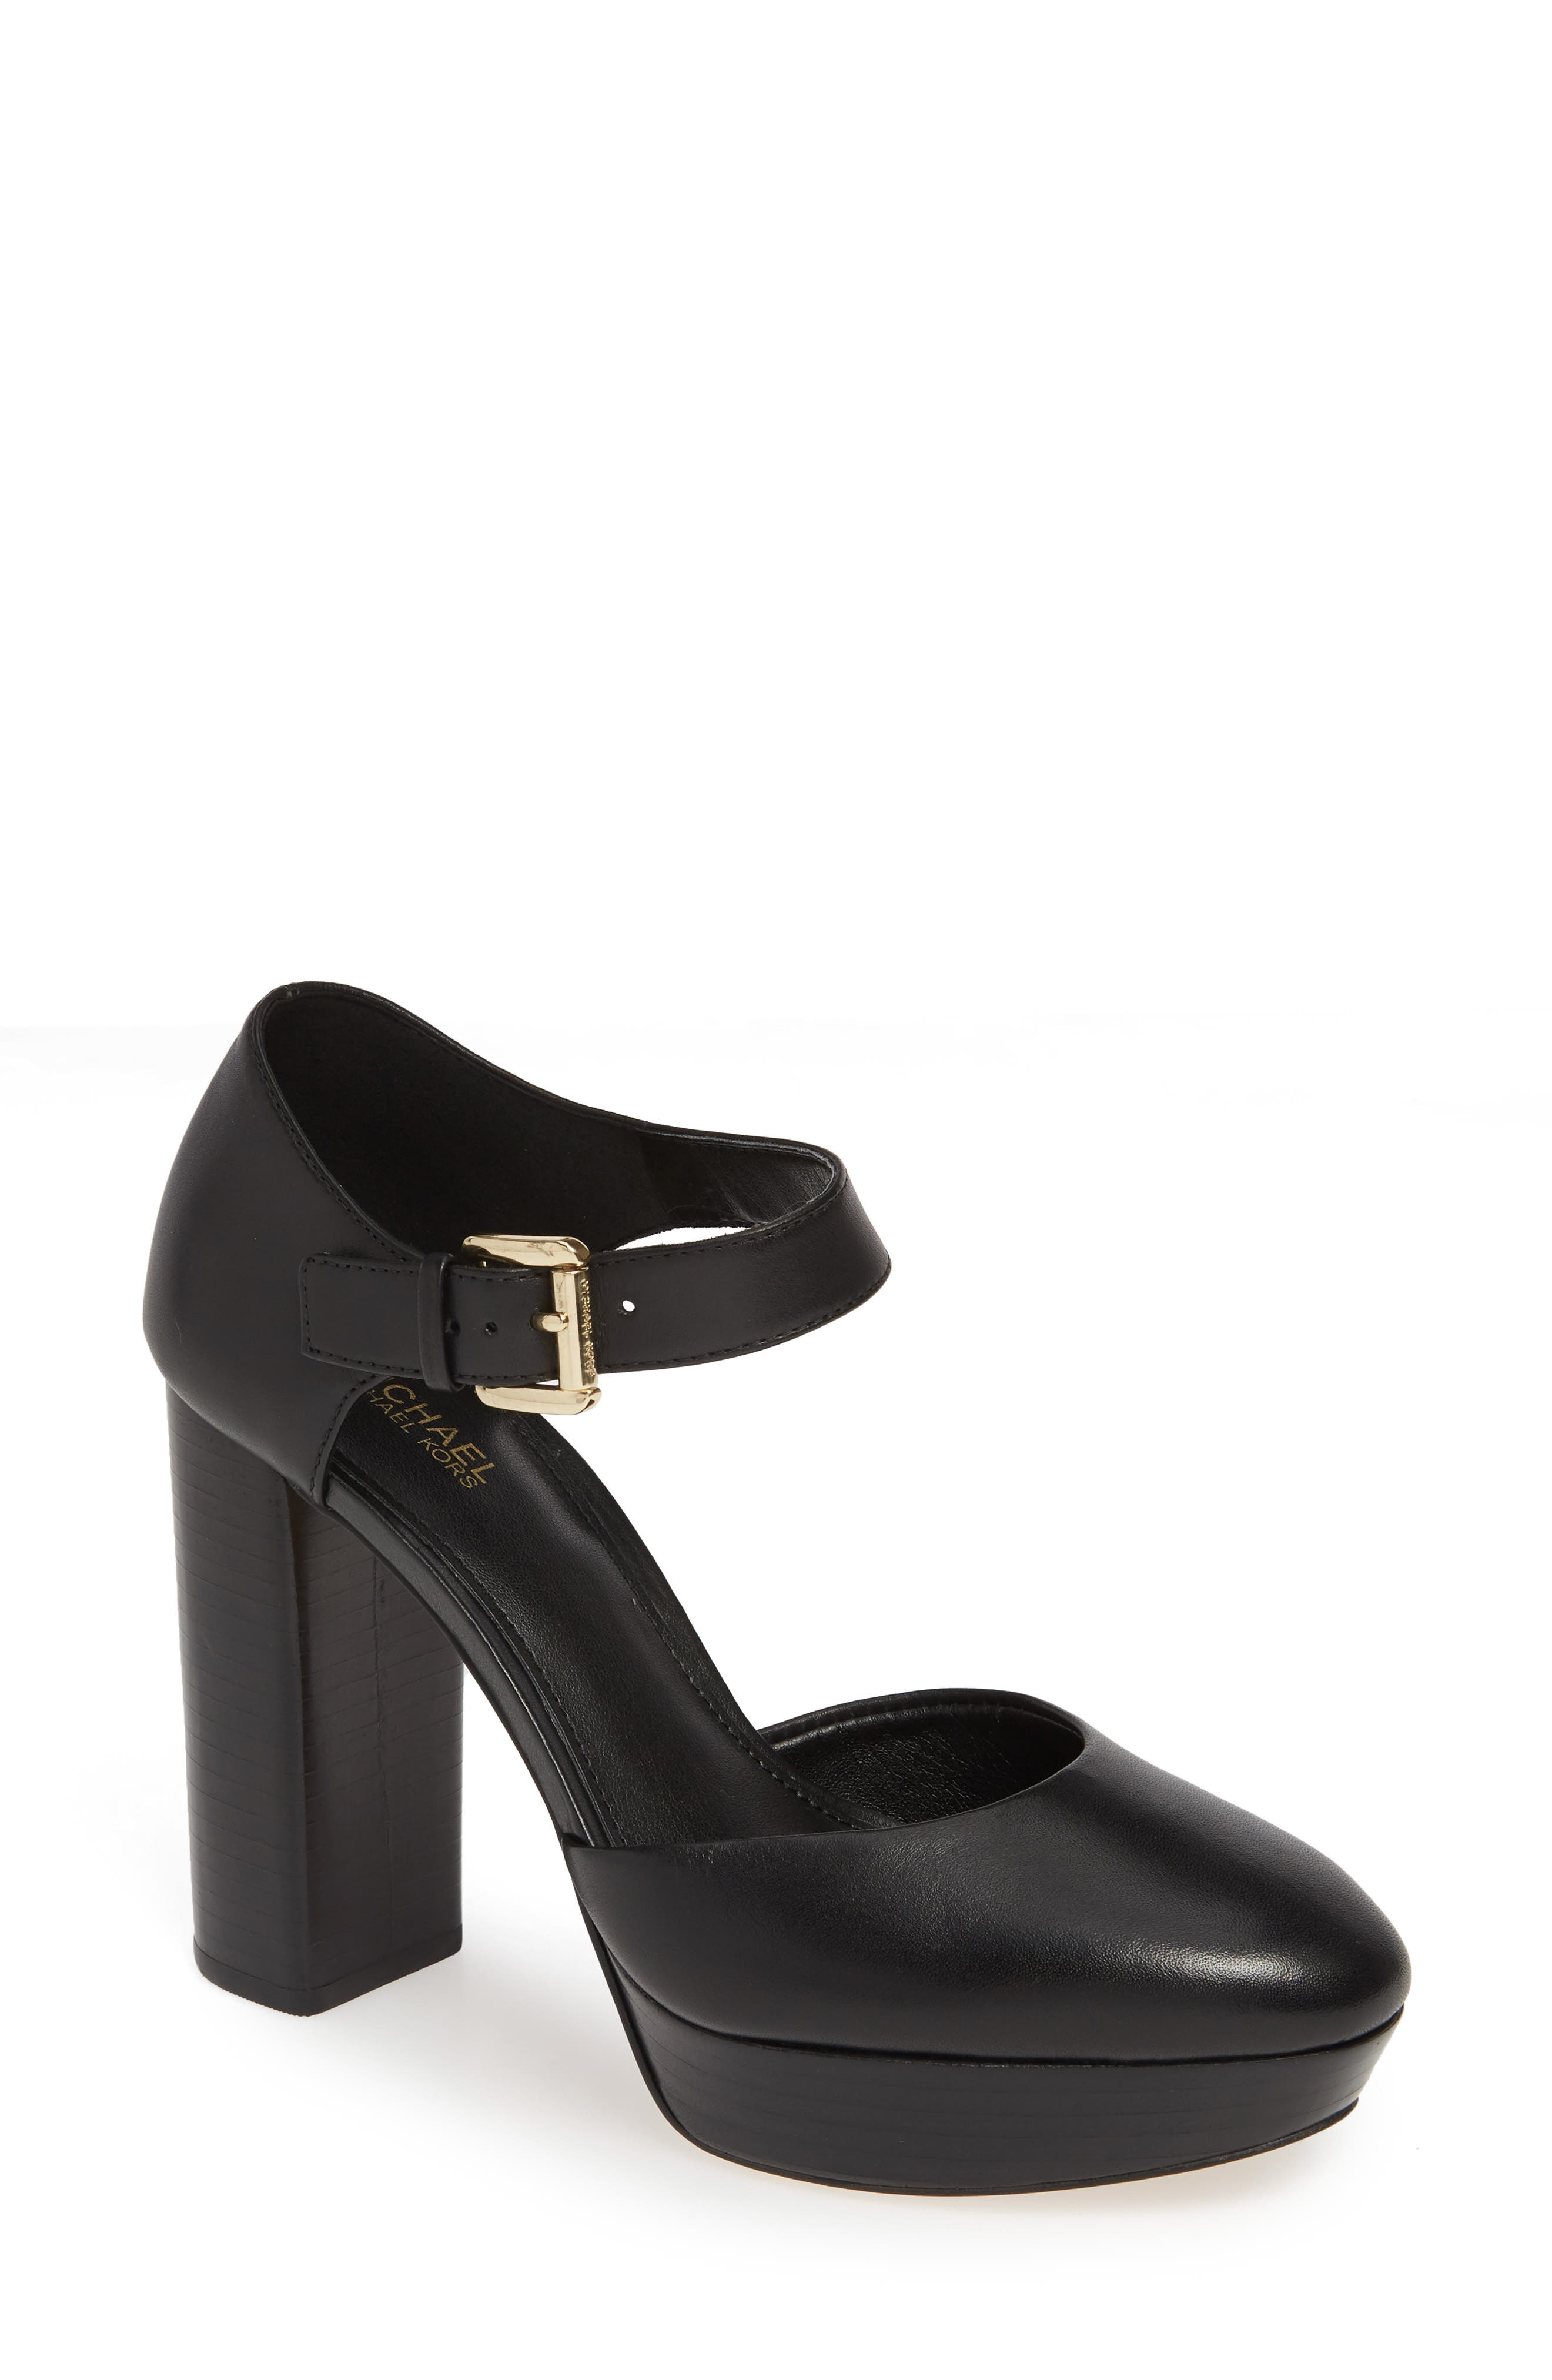 MICHAEL MICHAEL KORS Platform Pump, Main, color, BLACK VACHETTA LEATHER